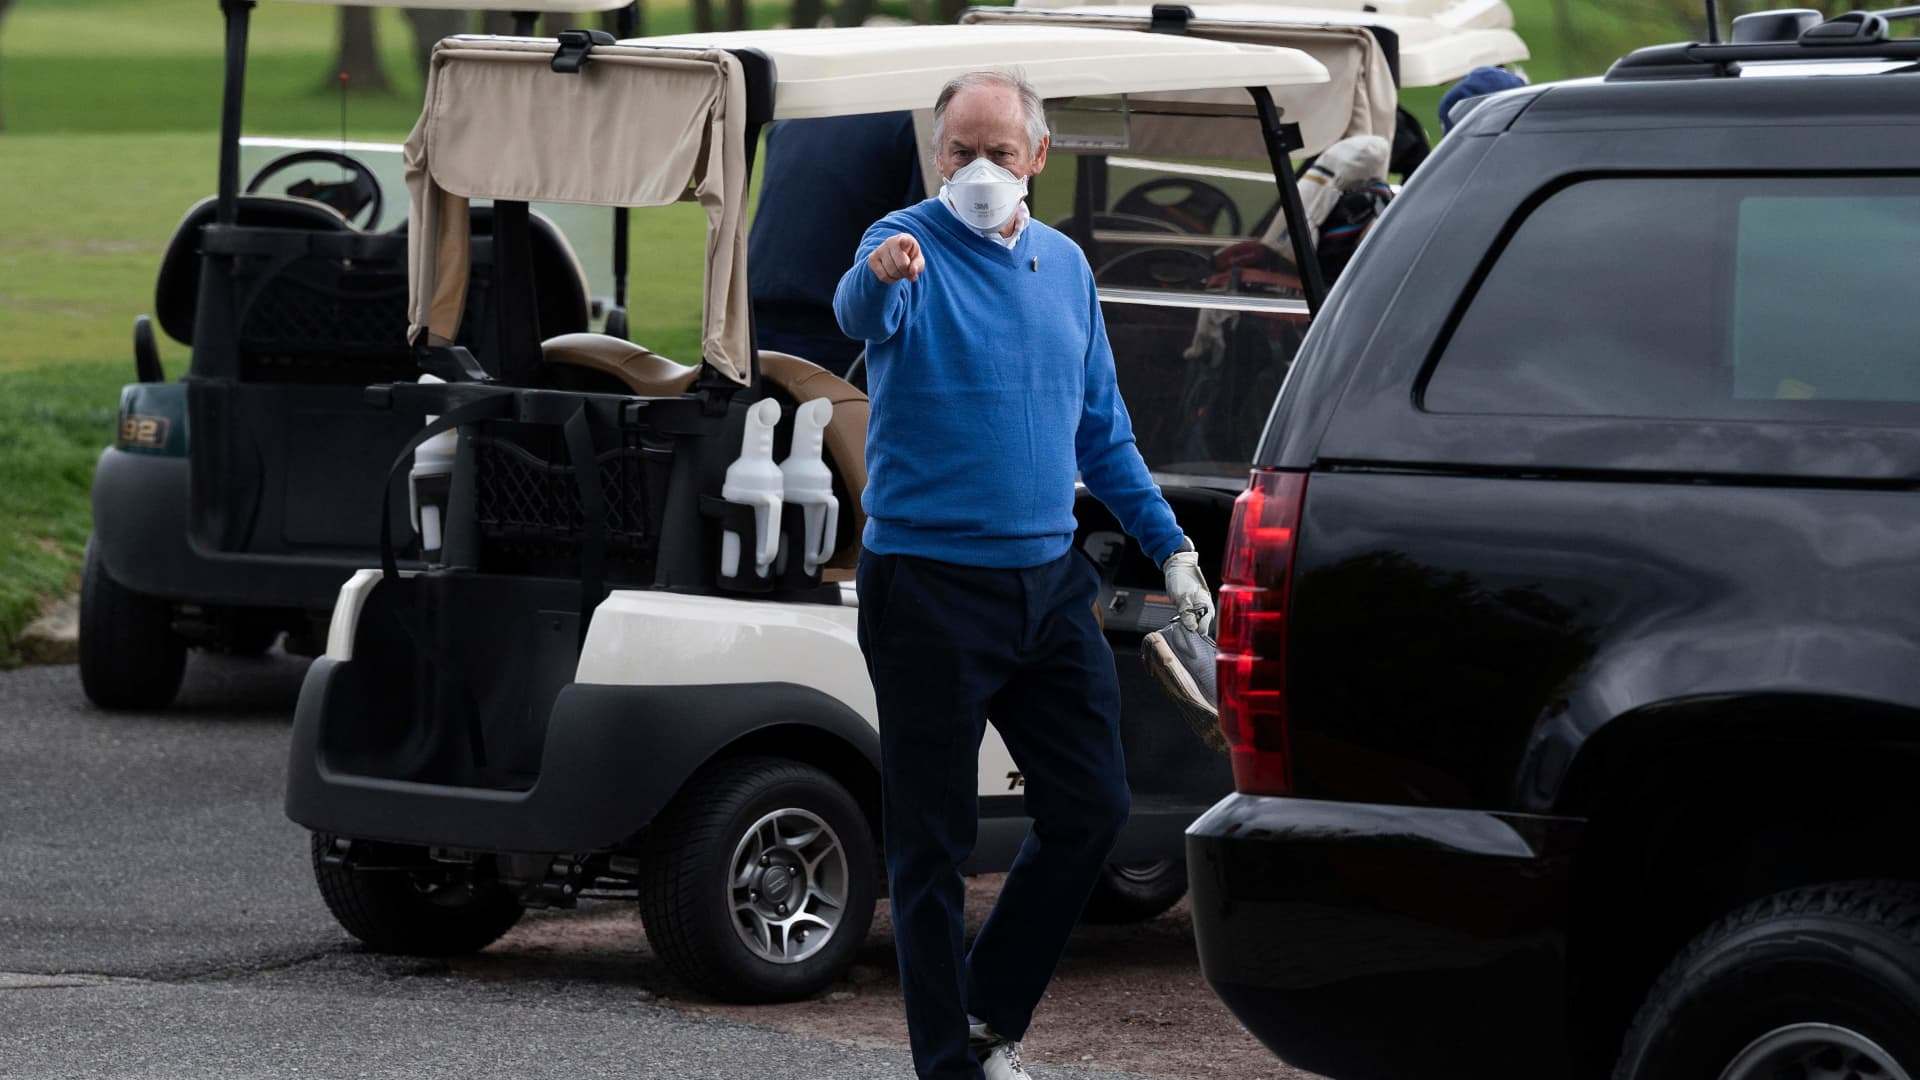 Counselor to the President Steve Ricchetti (C) gestures after playing a round of golf with US President Joe Biden at Wilmington Country Club in Wilmington, Delaware on April 17, 2021.